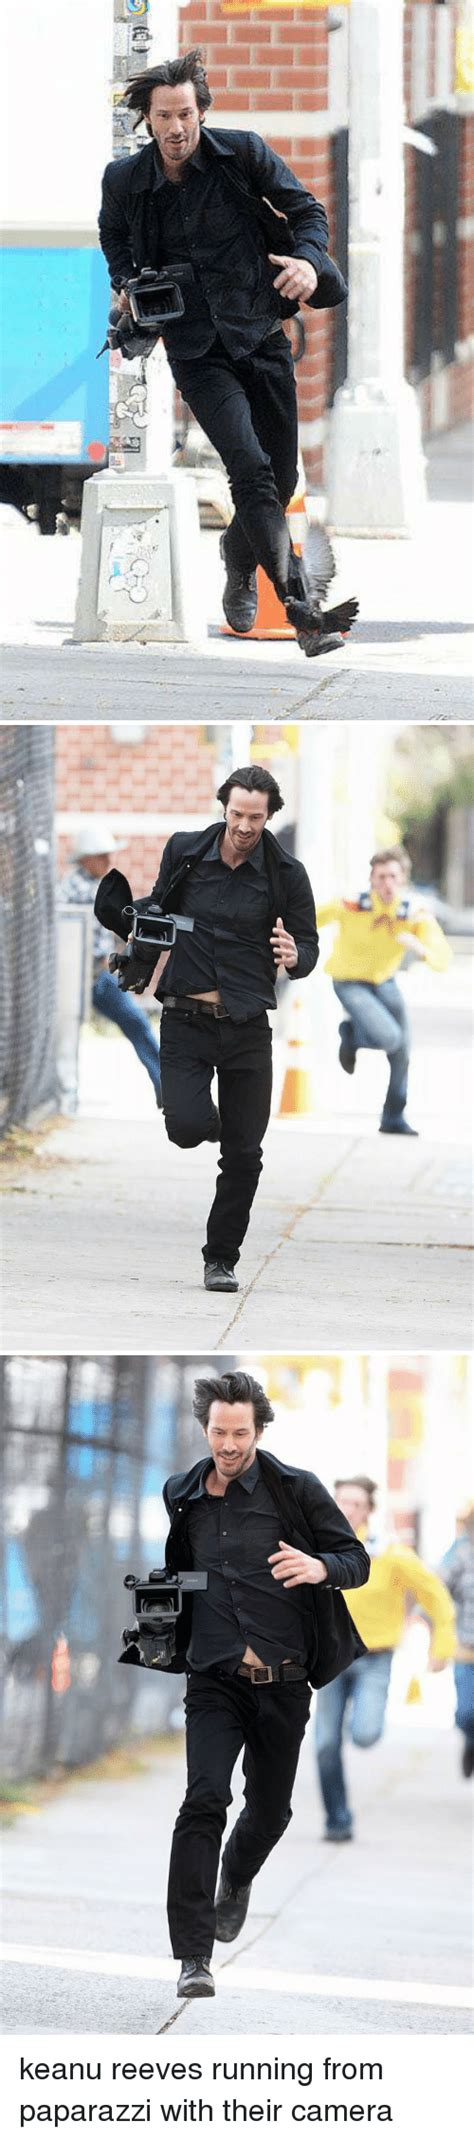 Keanu Reeves Runs The Paparazzi by Search S Memes On Me Me